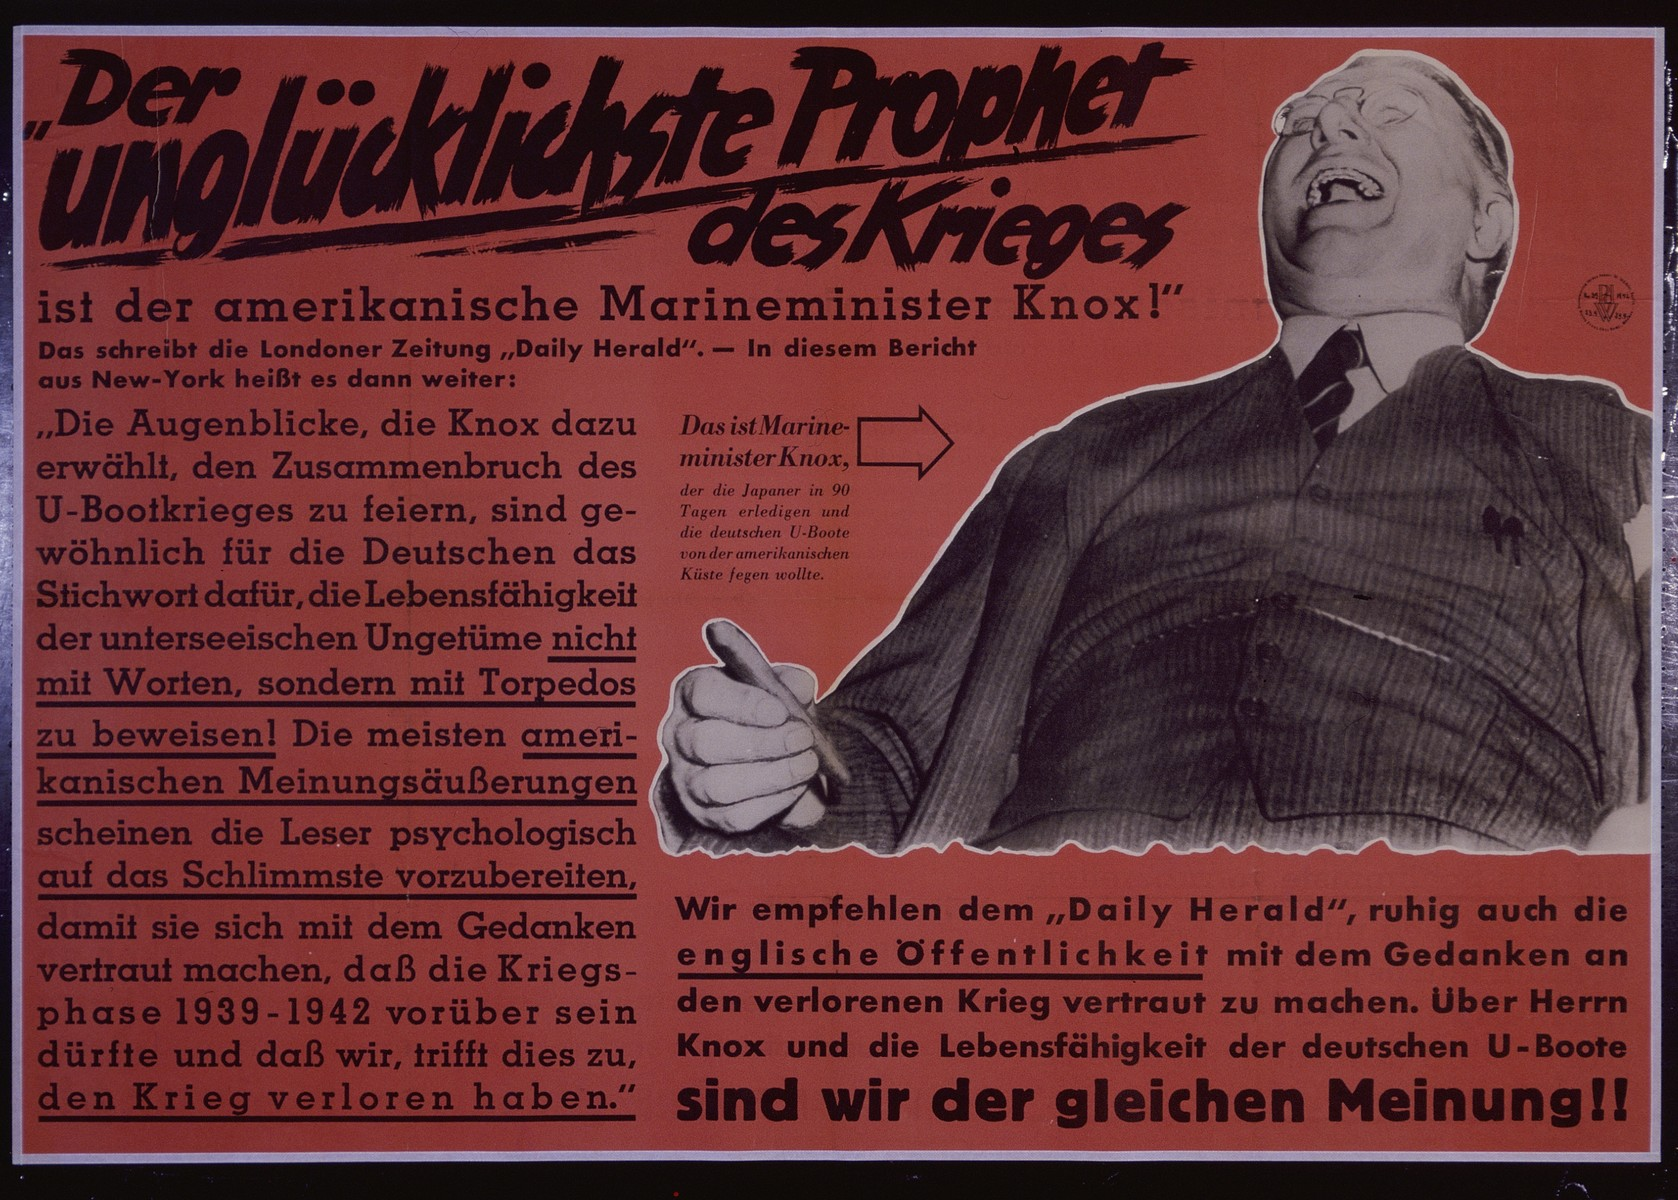 """Nazi propaganda poster entitled, """"Der unglucklichste Prophet des Krieges,""""  issued by the """"Parole der Woche,"""" a wall newspaper (Wandzeitung) published by the National Socialist Party propaganda office in Munich."""